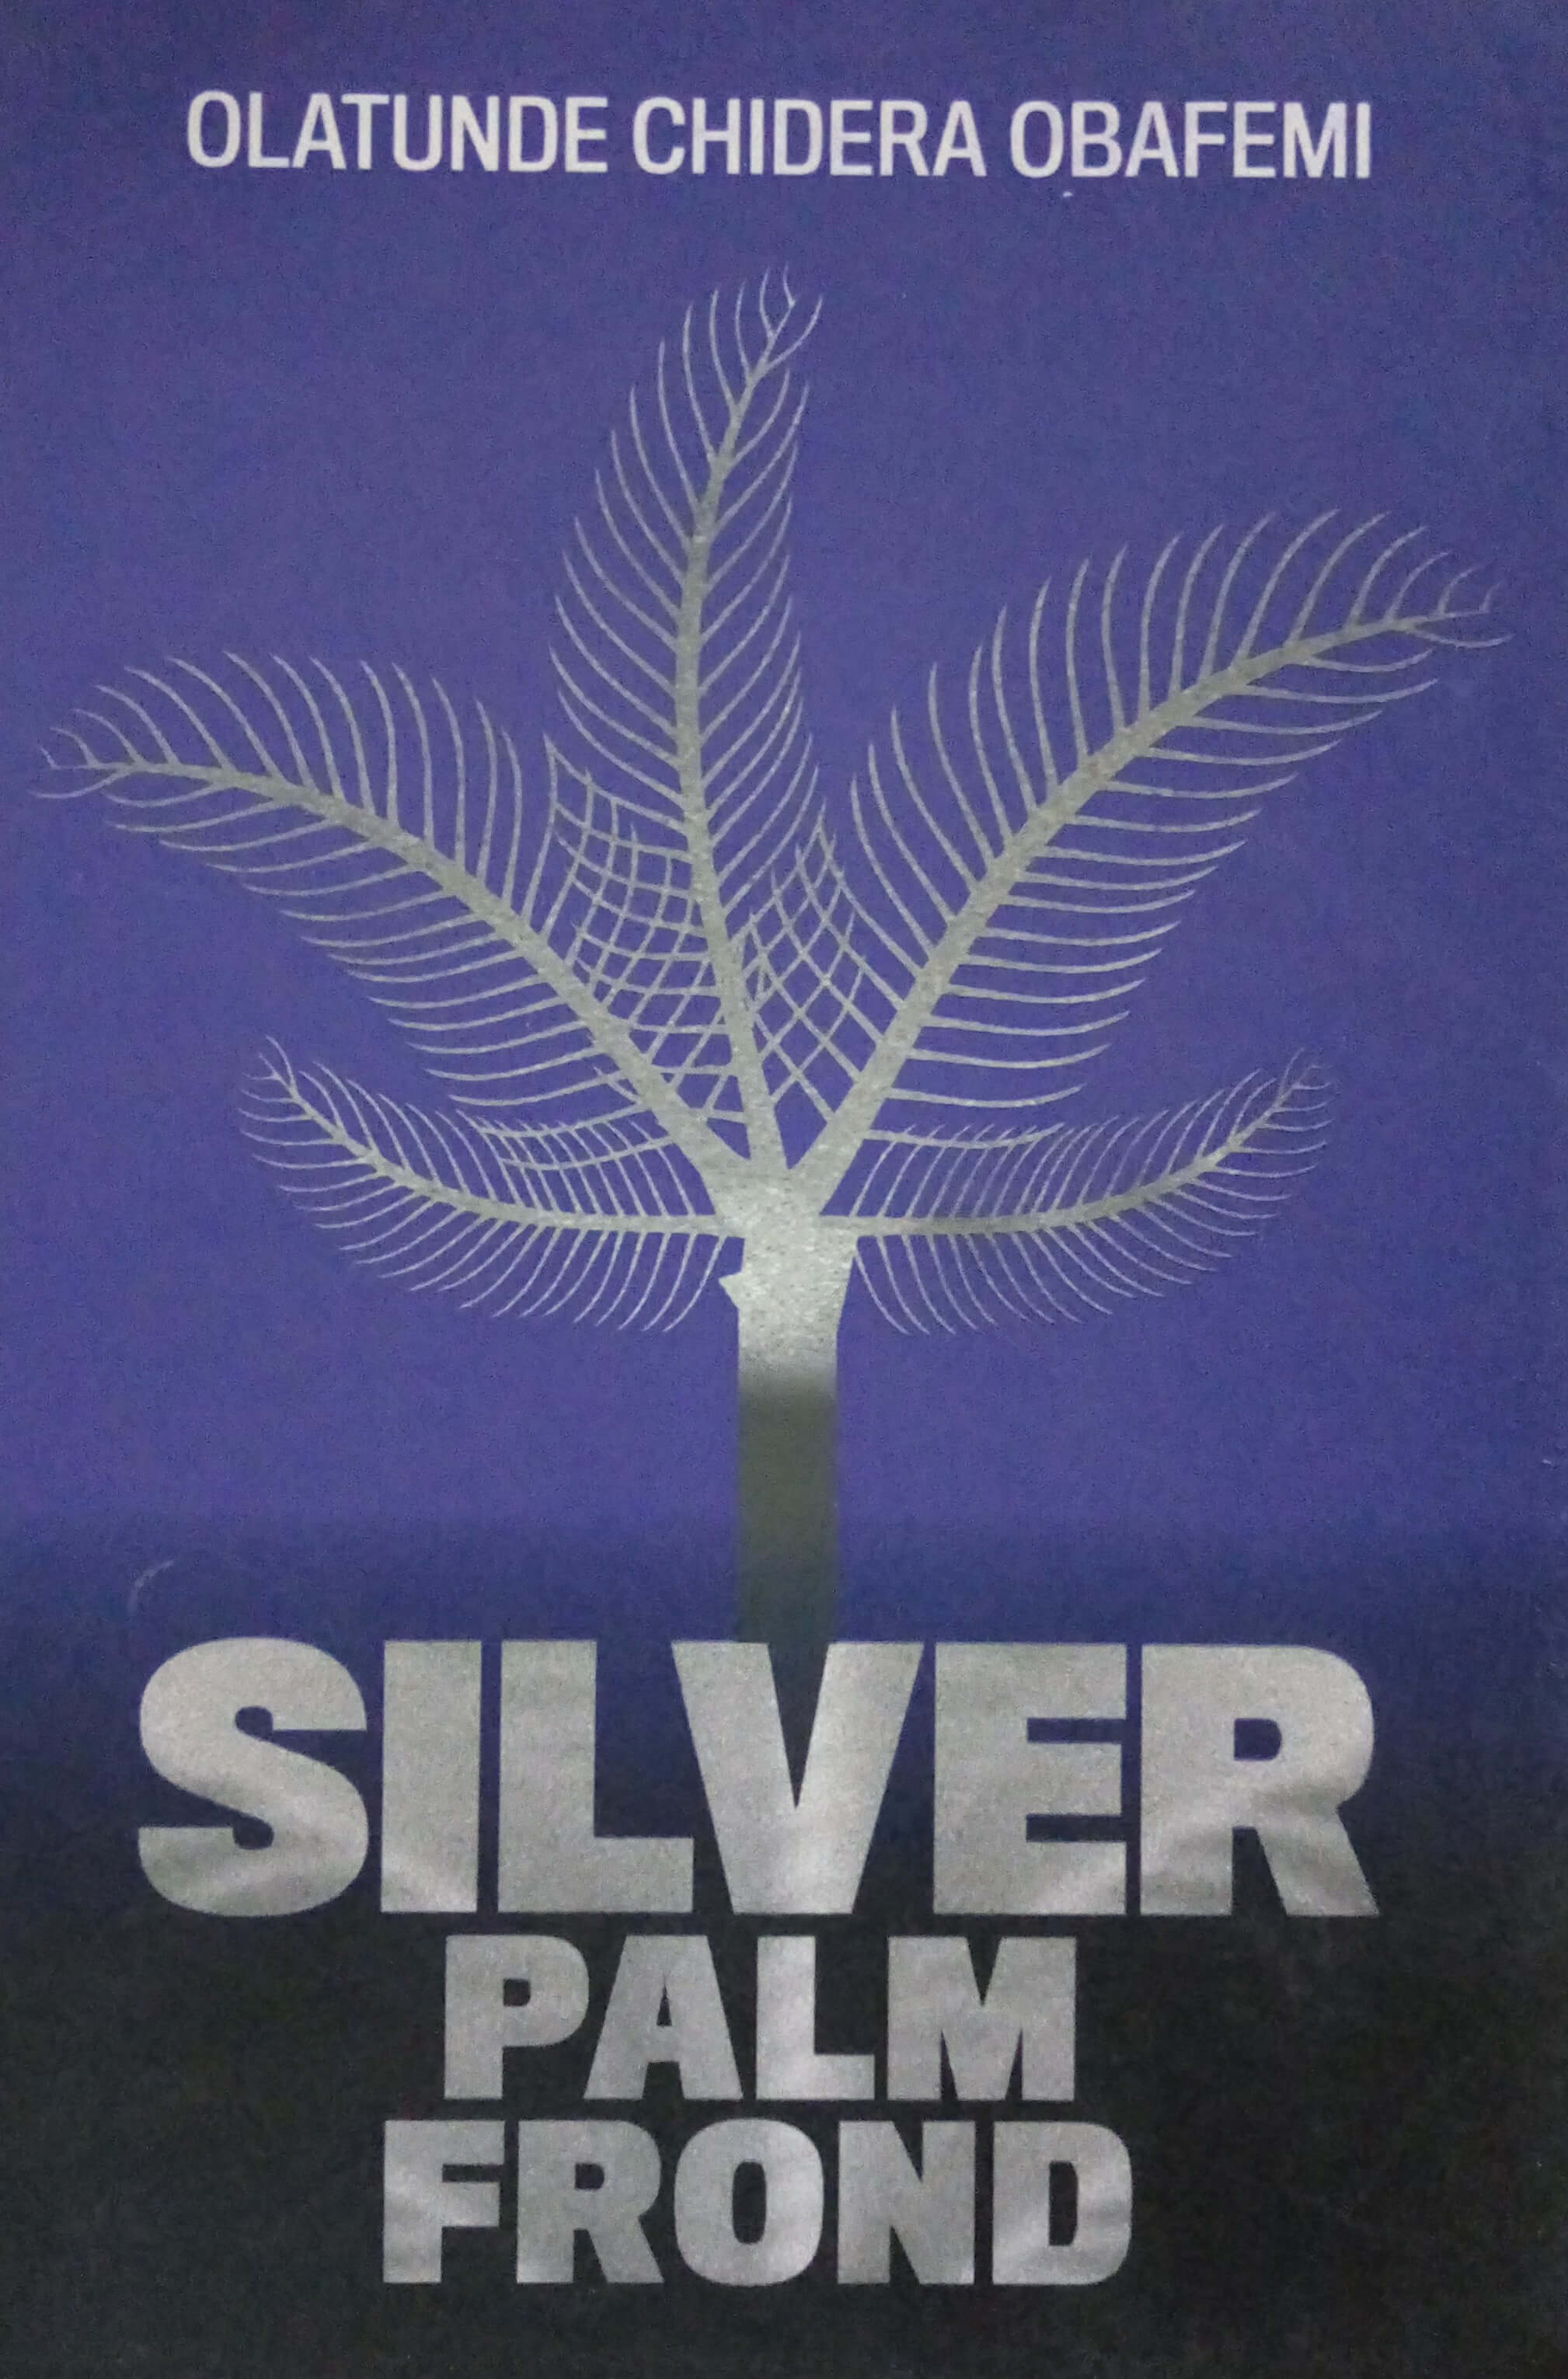 Silvr Palm Frond Book Cover